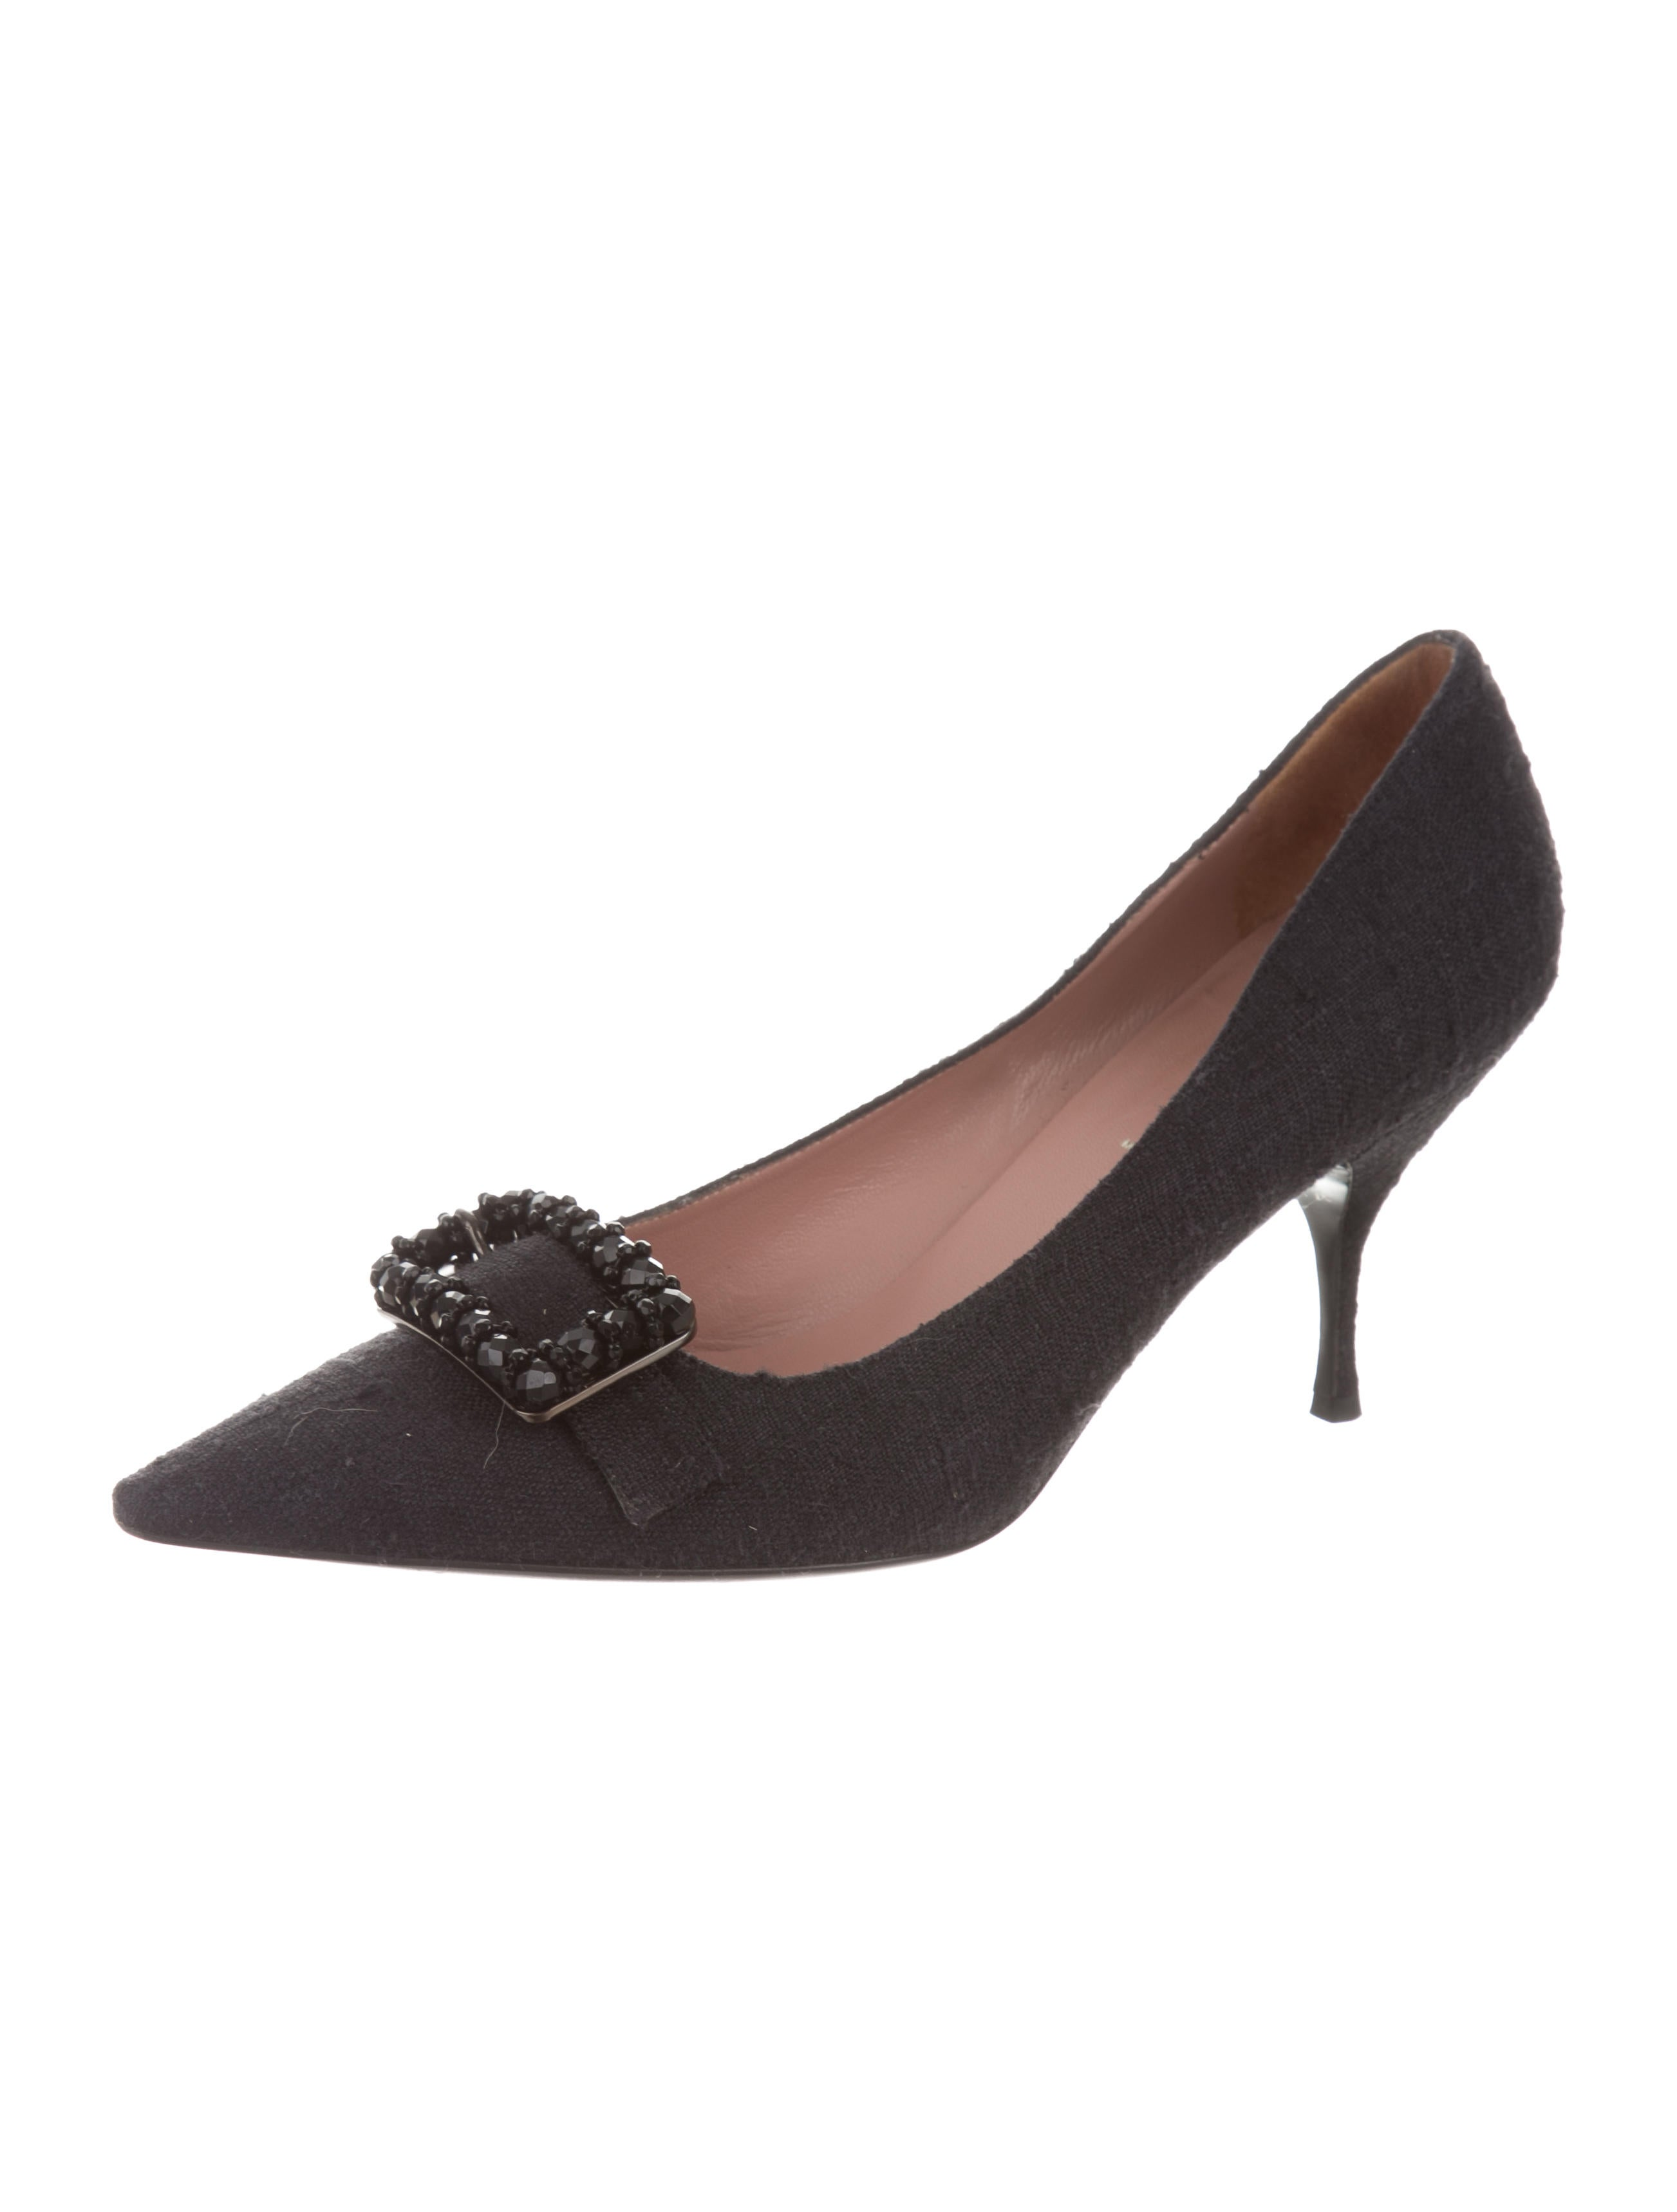 visit online Prada Suede Buckle Accented Pumps outlet hot sale cheap top quality uK3FQ